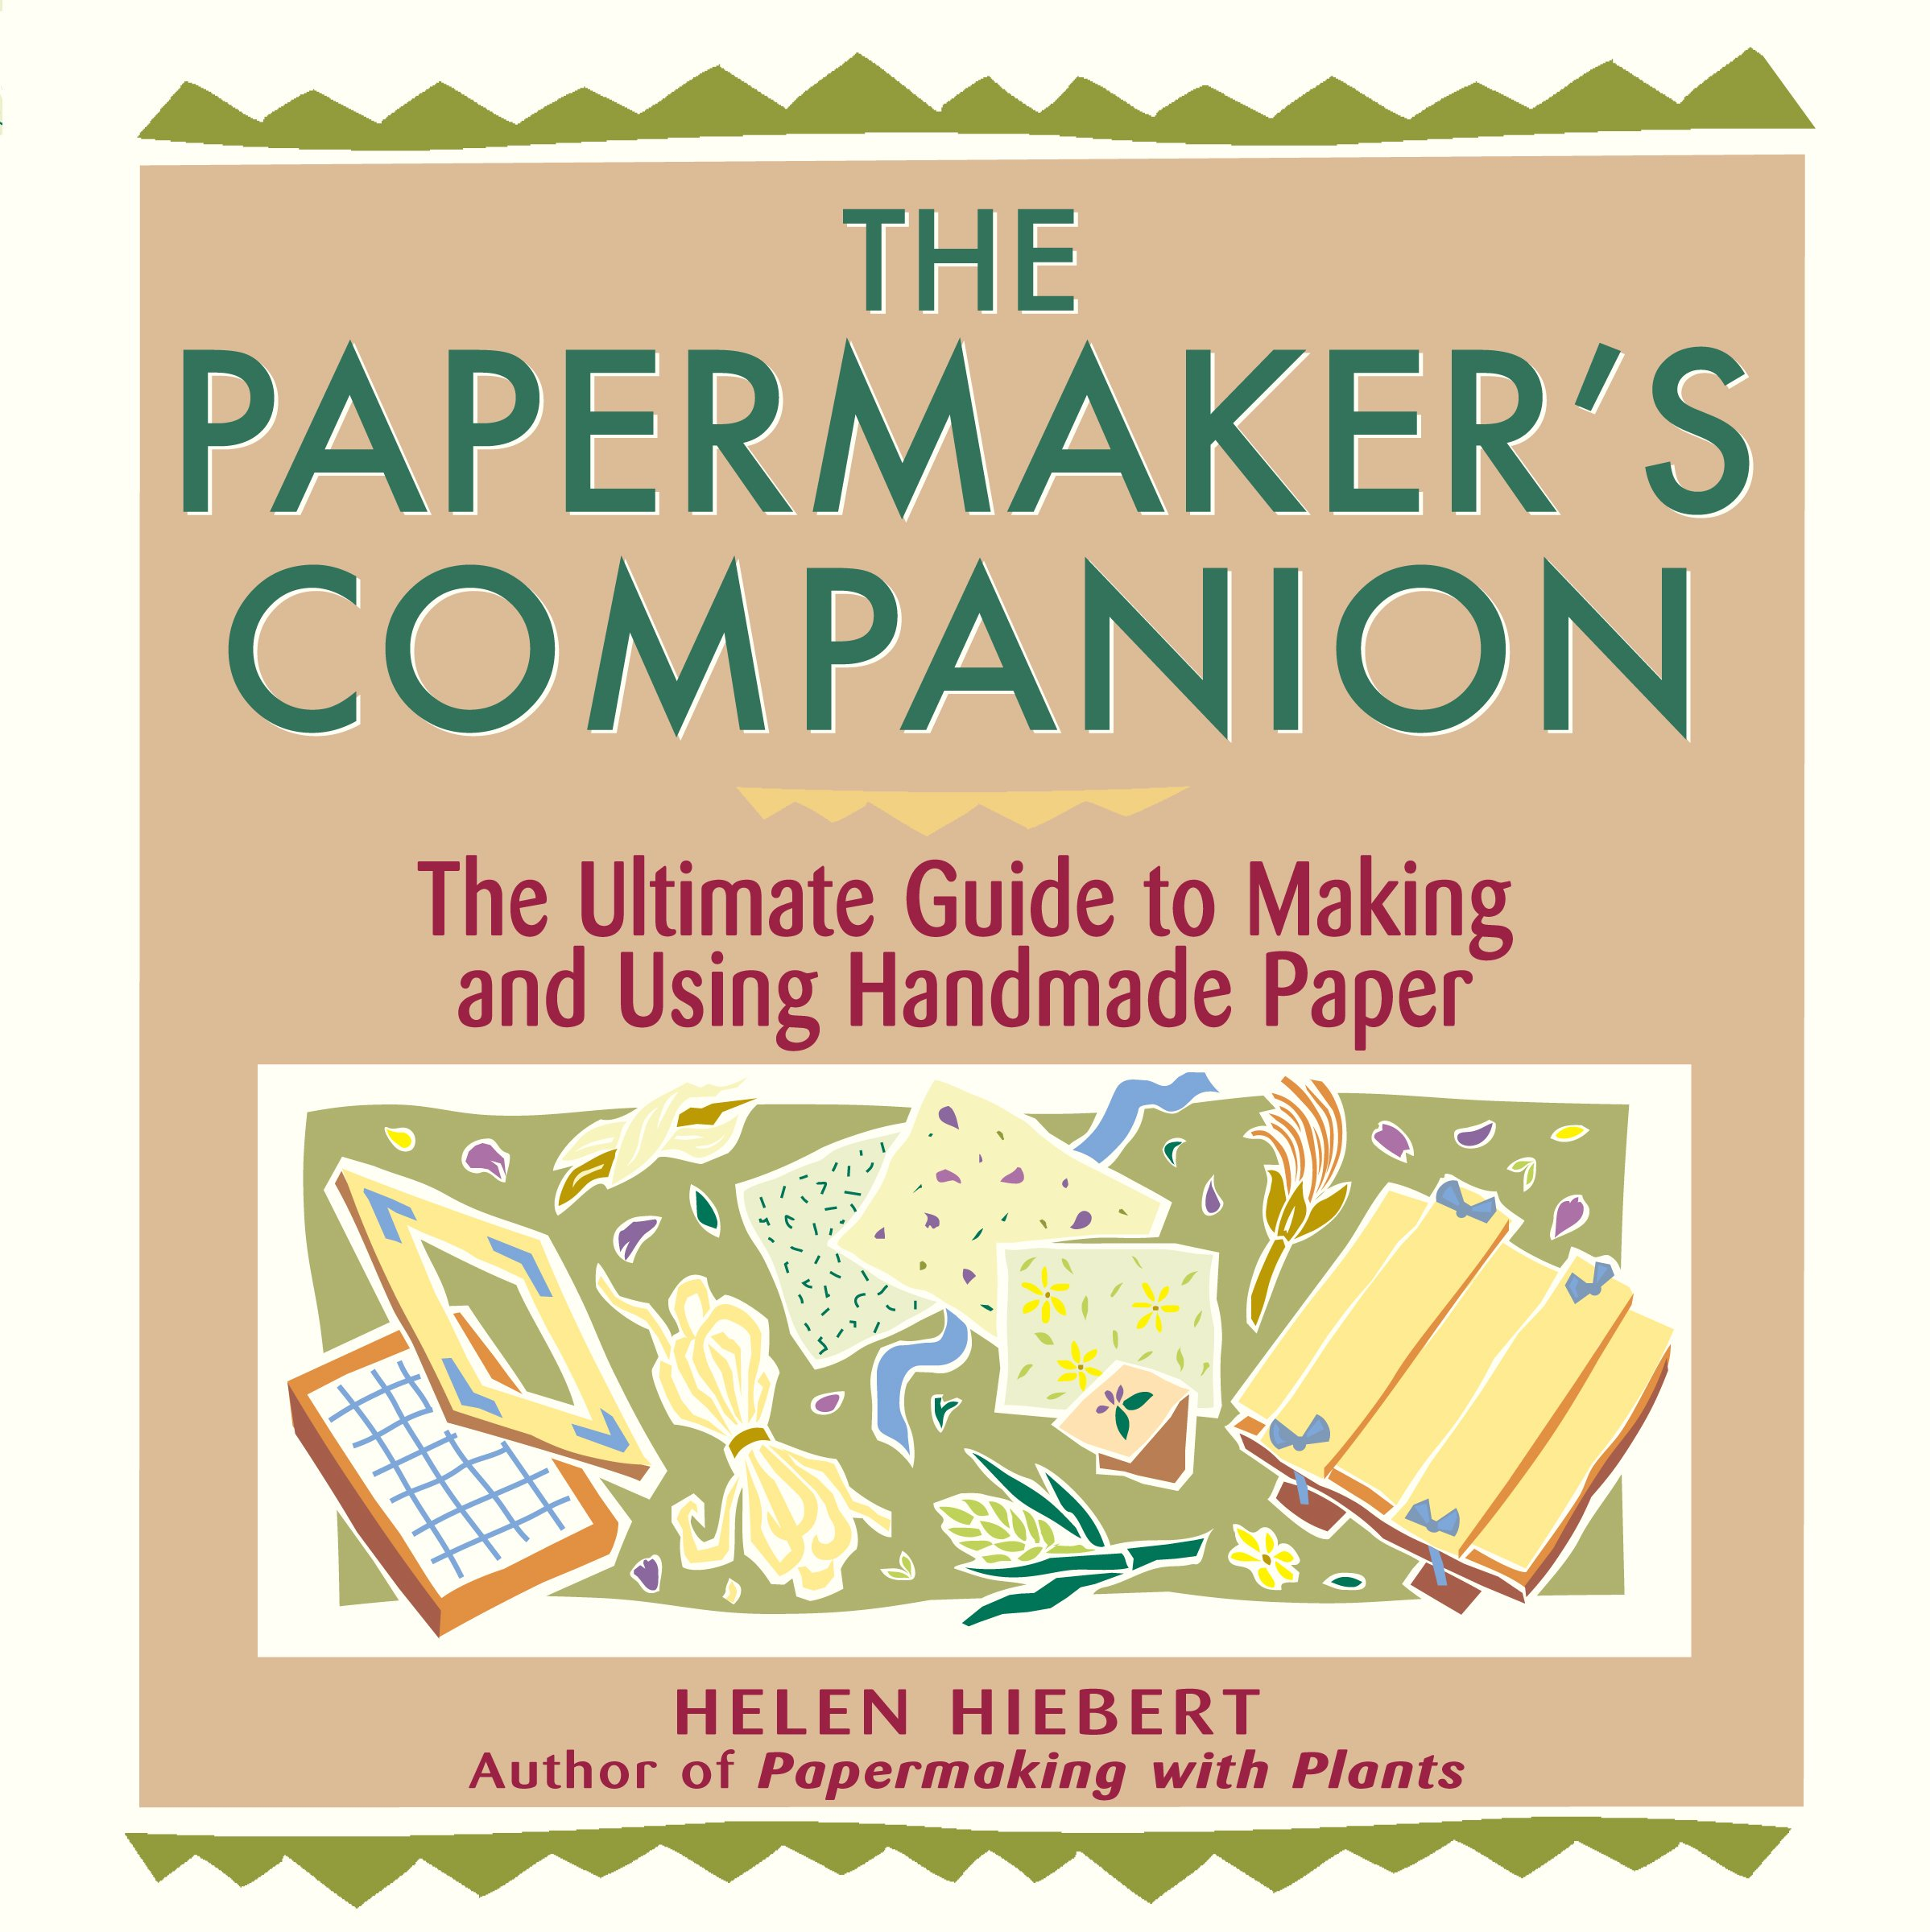 The Papermaker's Companion: The Ultimate Guide to Making and Using Handmade Paper PDF